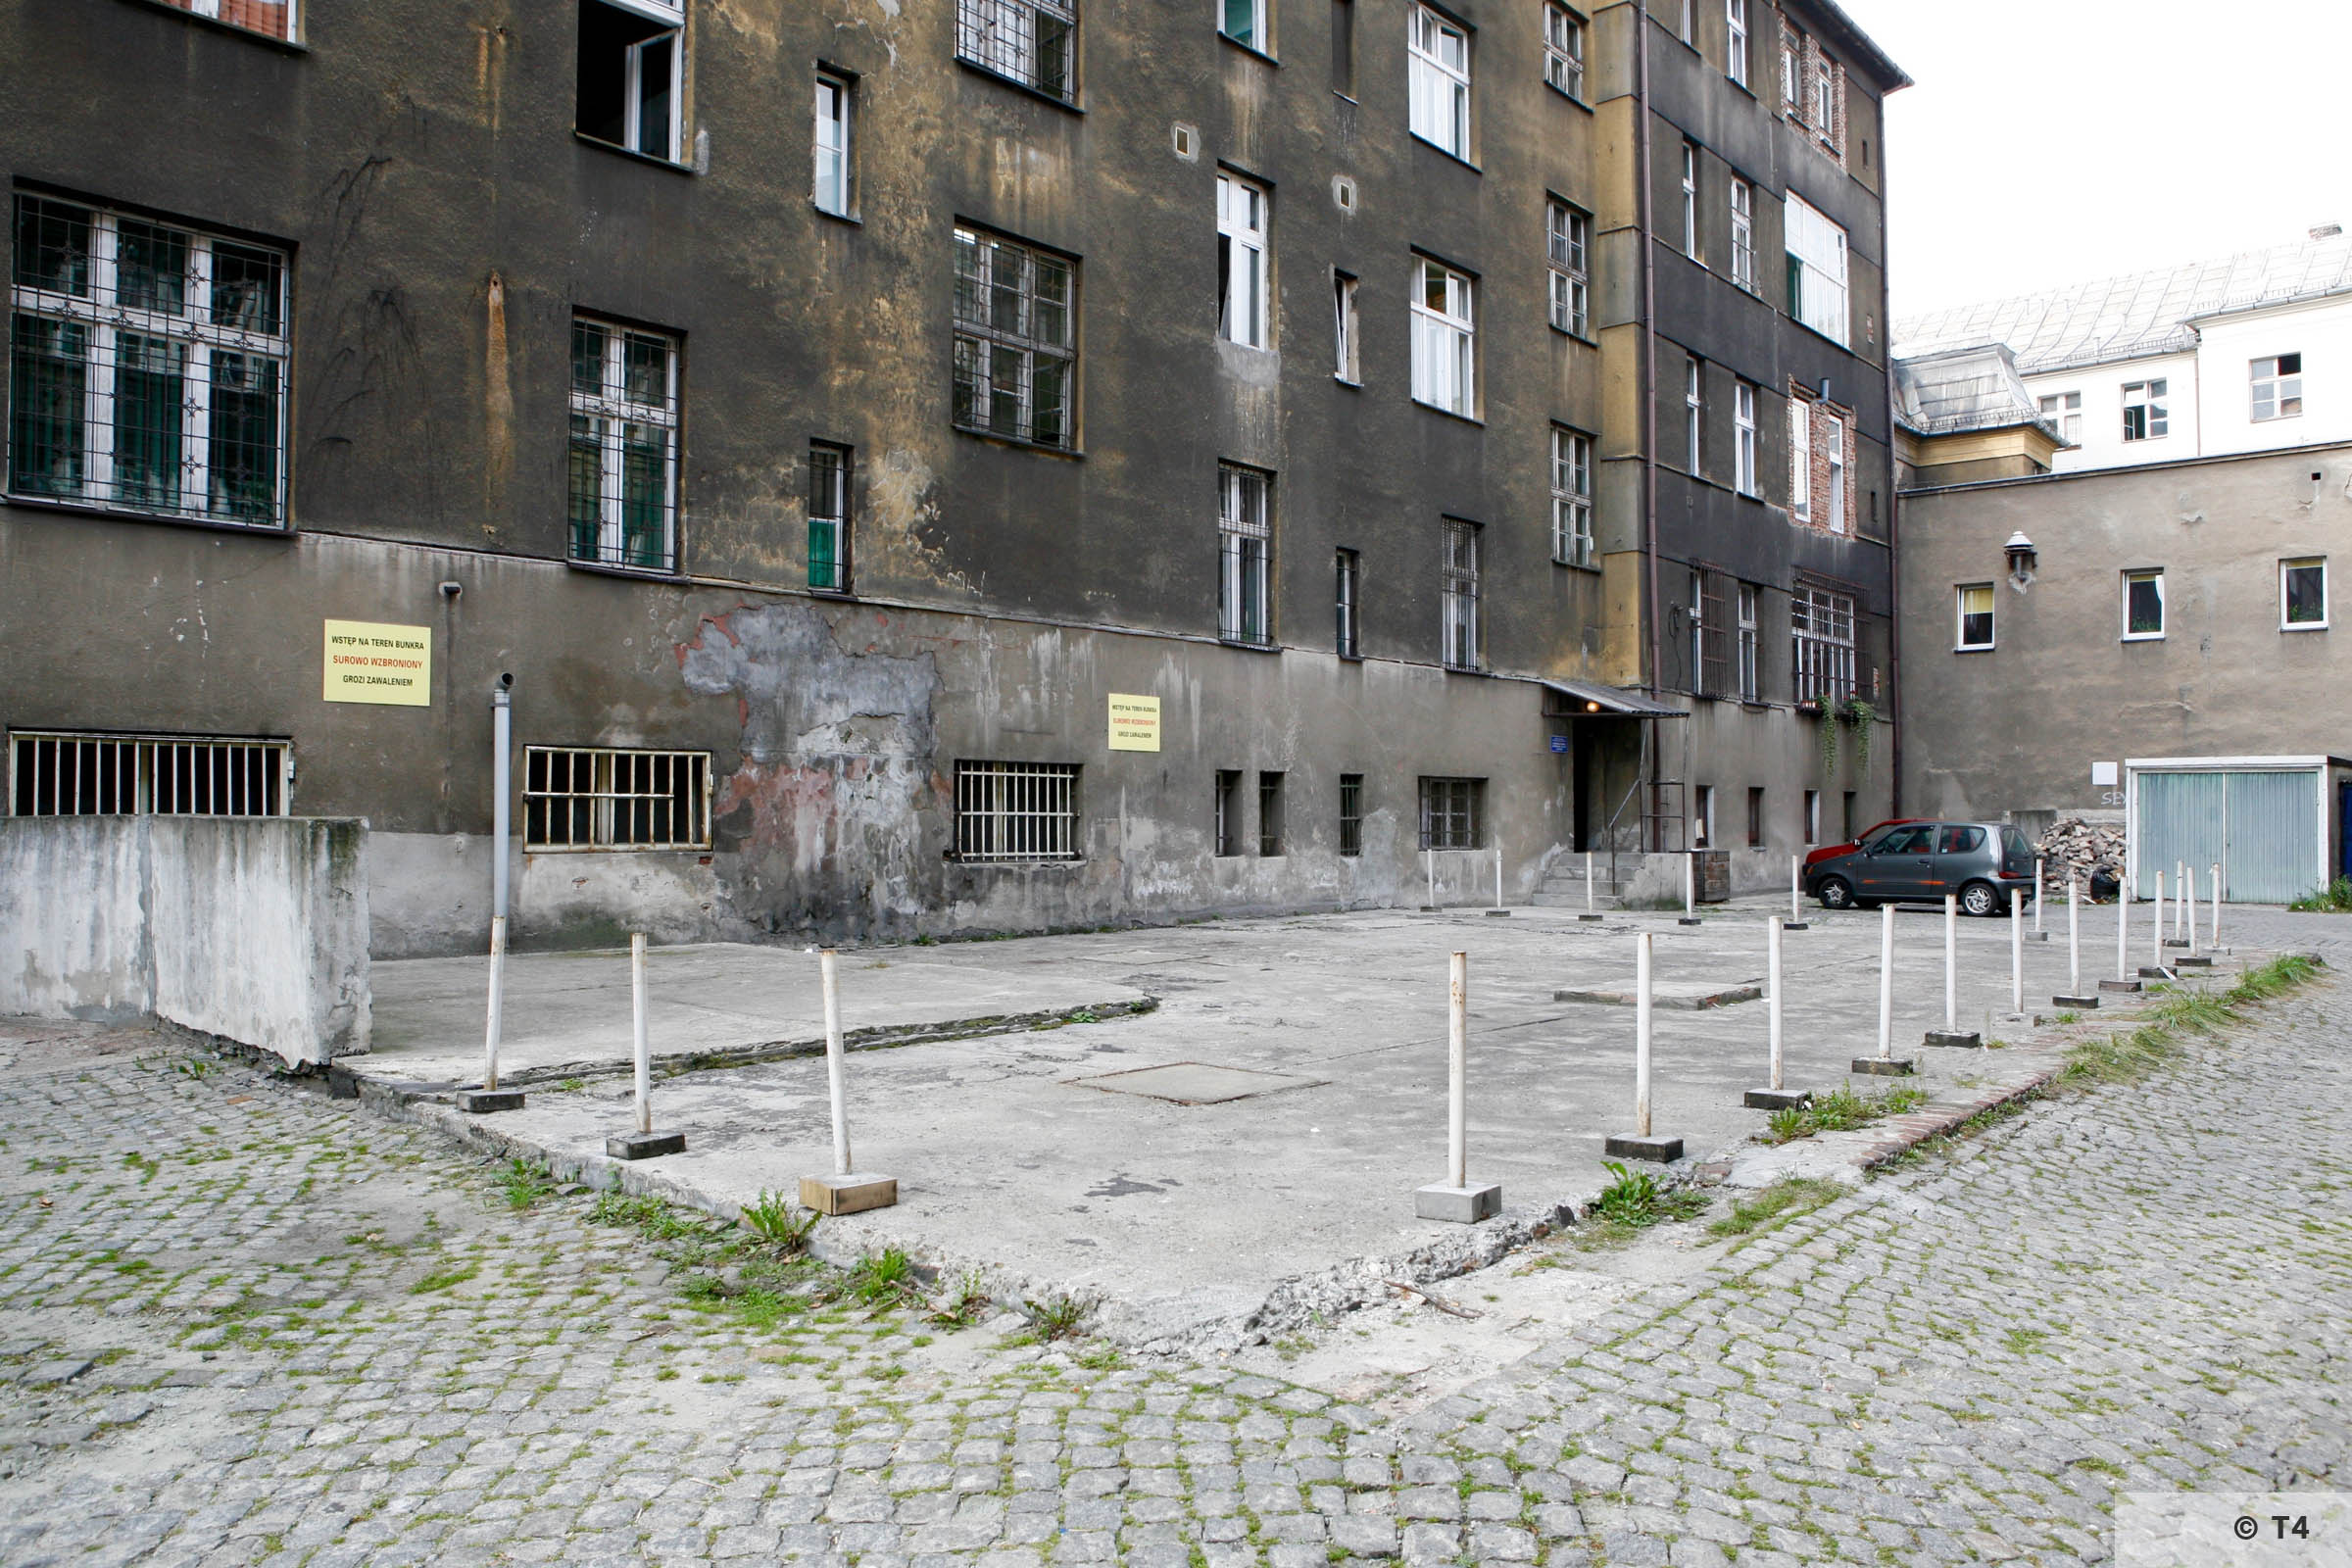 Building of the former Gestapo Headquarters in Katowice. Air raid bunker is undeneath the fenced off area. 2006 T4 3737